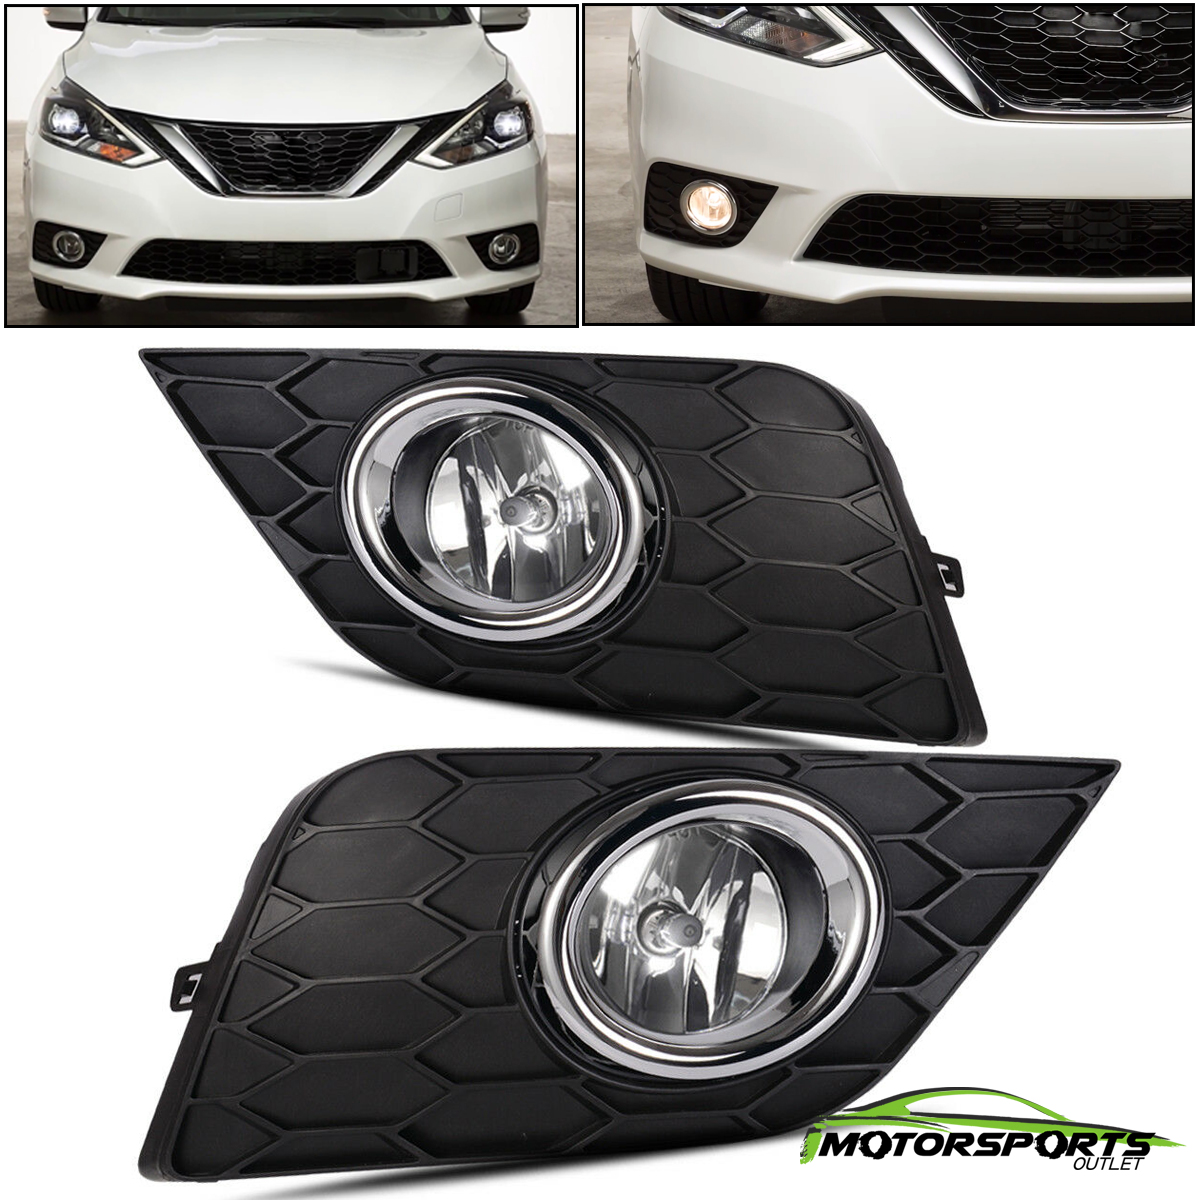 Details about For 2016 2017 Nissan Sylphy/Sentra Bumper Fog Lights+Switch+Bulbs+Wiring on